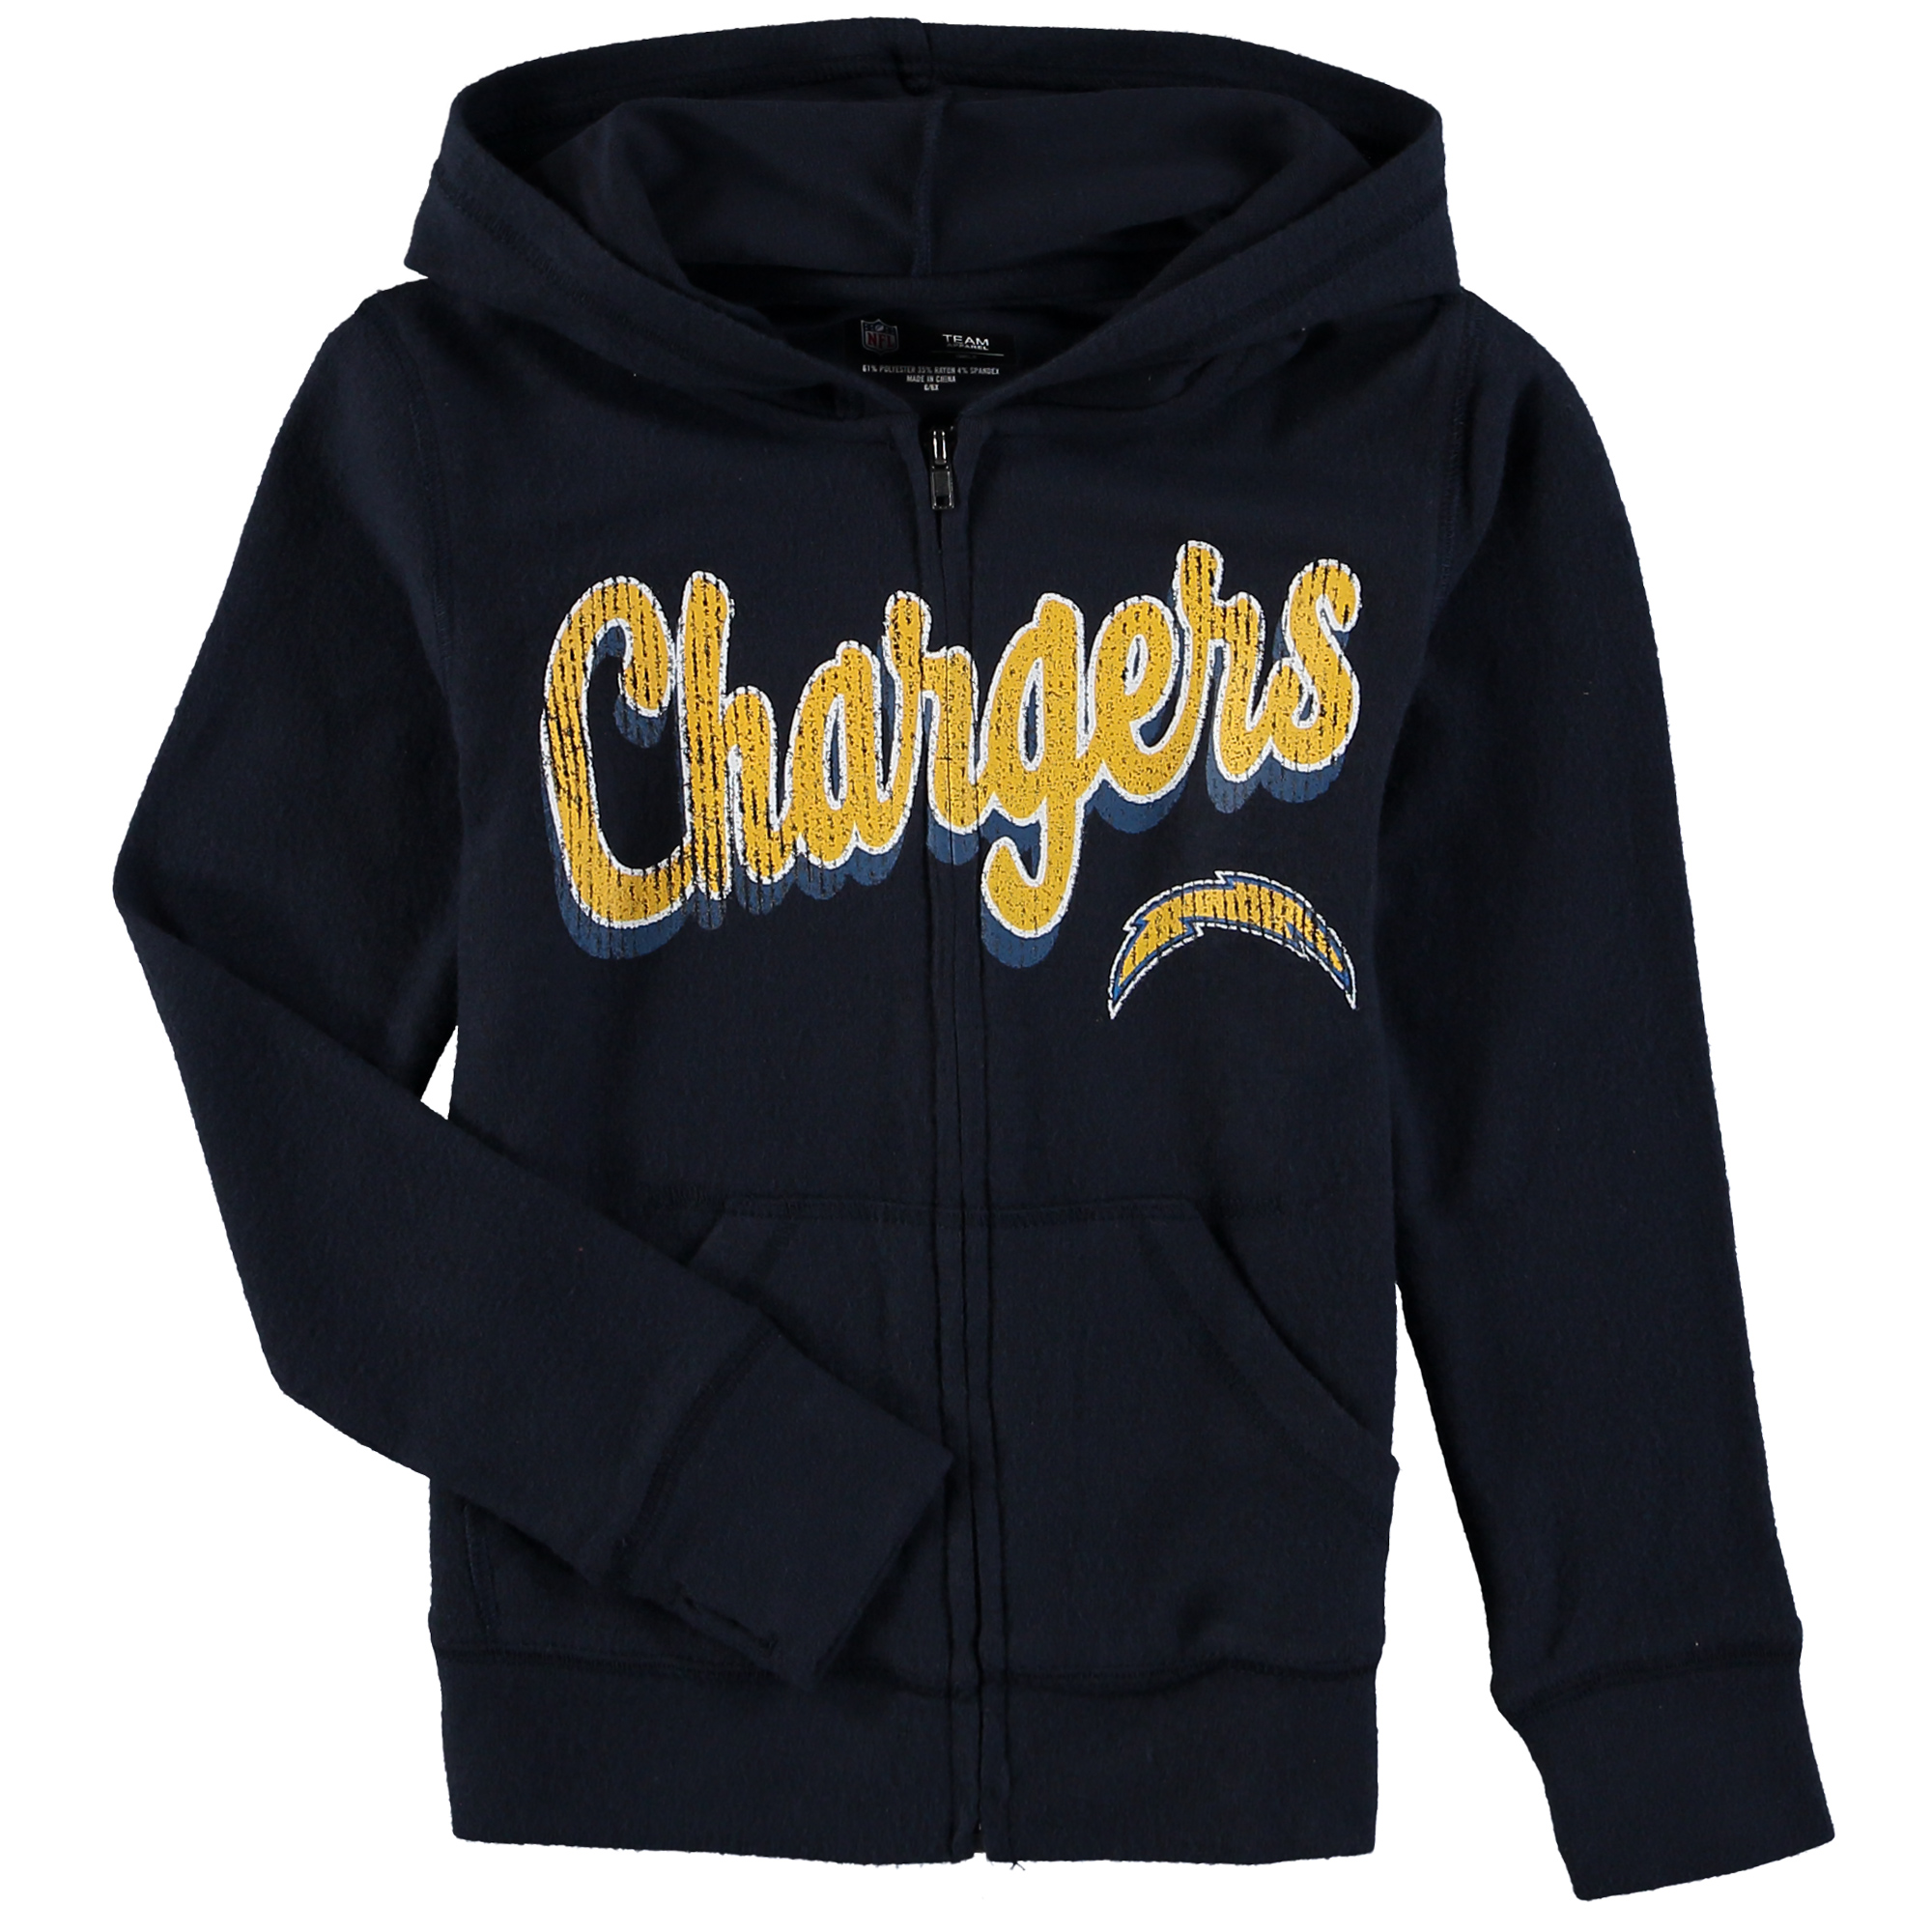 Los Angeles Chargers 5th & Ocean by New Era Girls Youth Brushed Knit Tri-Blend Full-Zip Hoodie - Navy